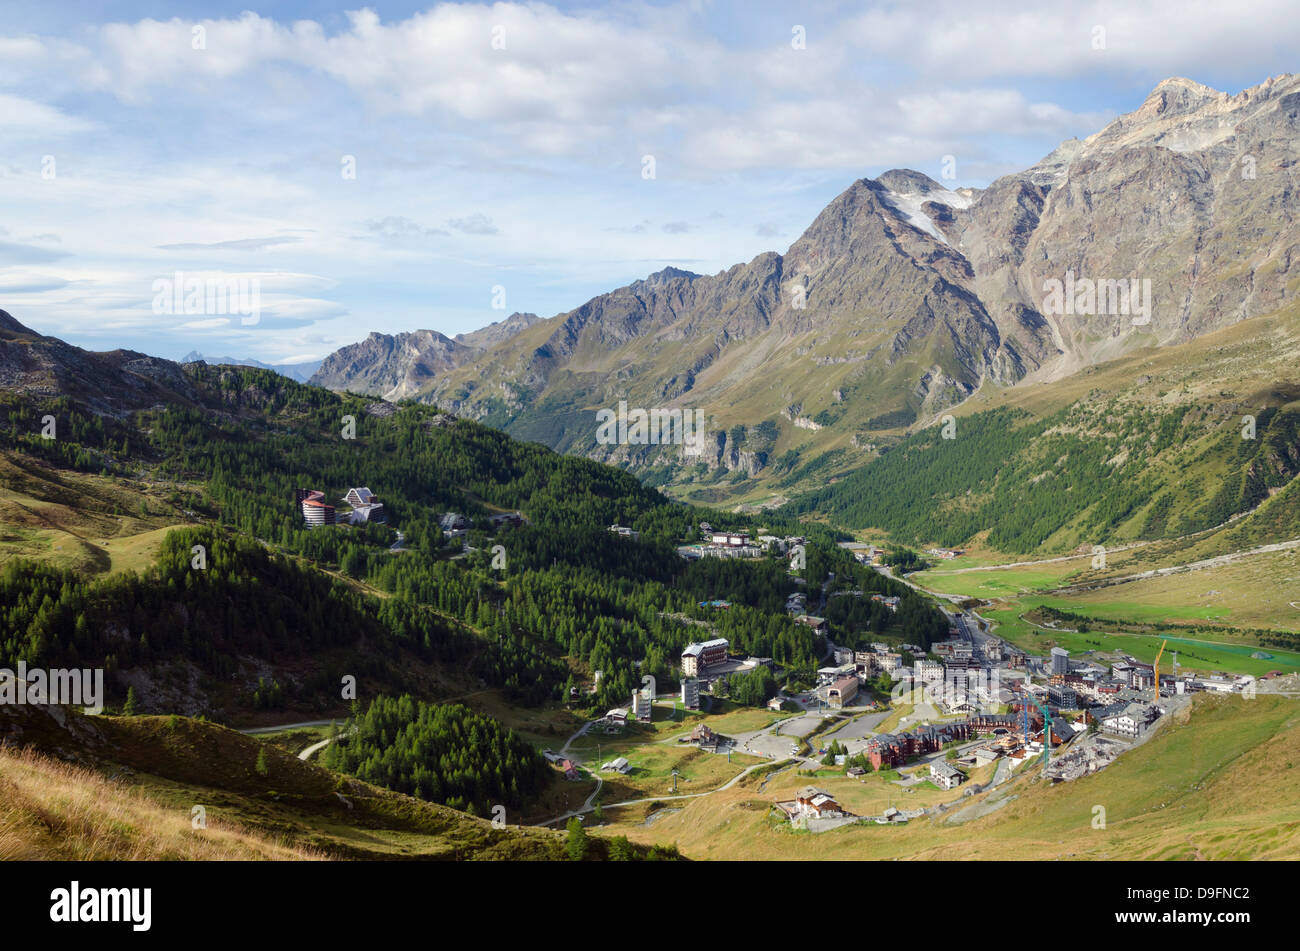 Breuil Cervinia resort town, Aosta Valley, Italian Alps, Italy - Stock Image